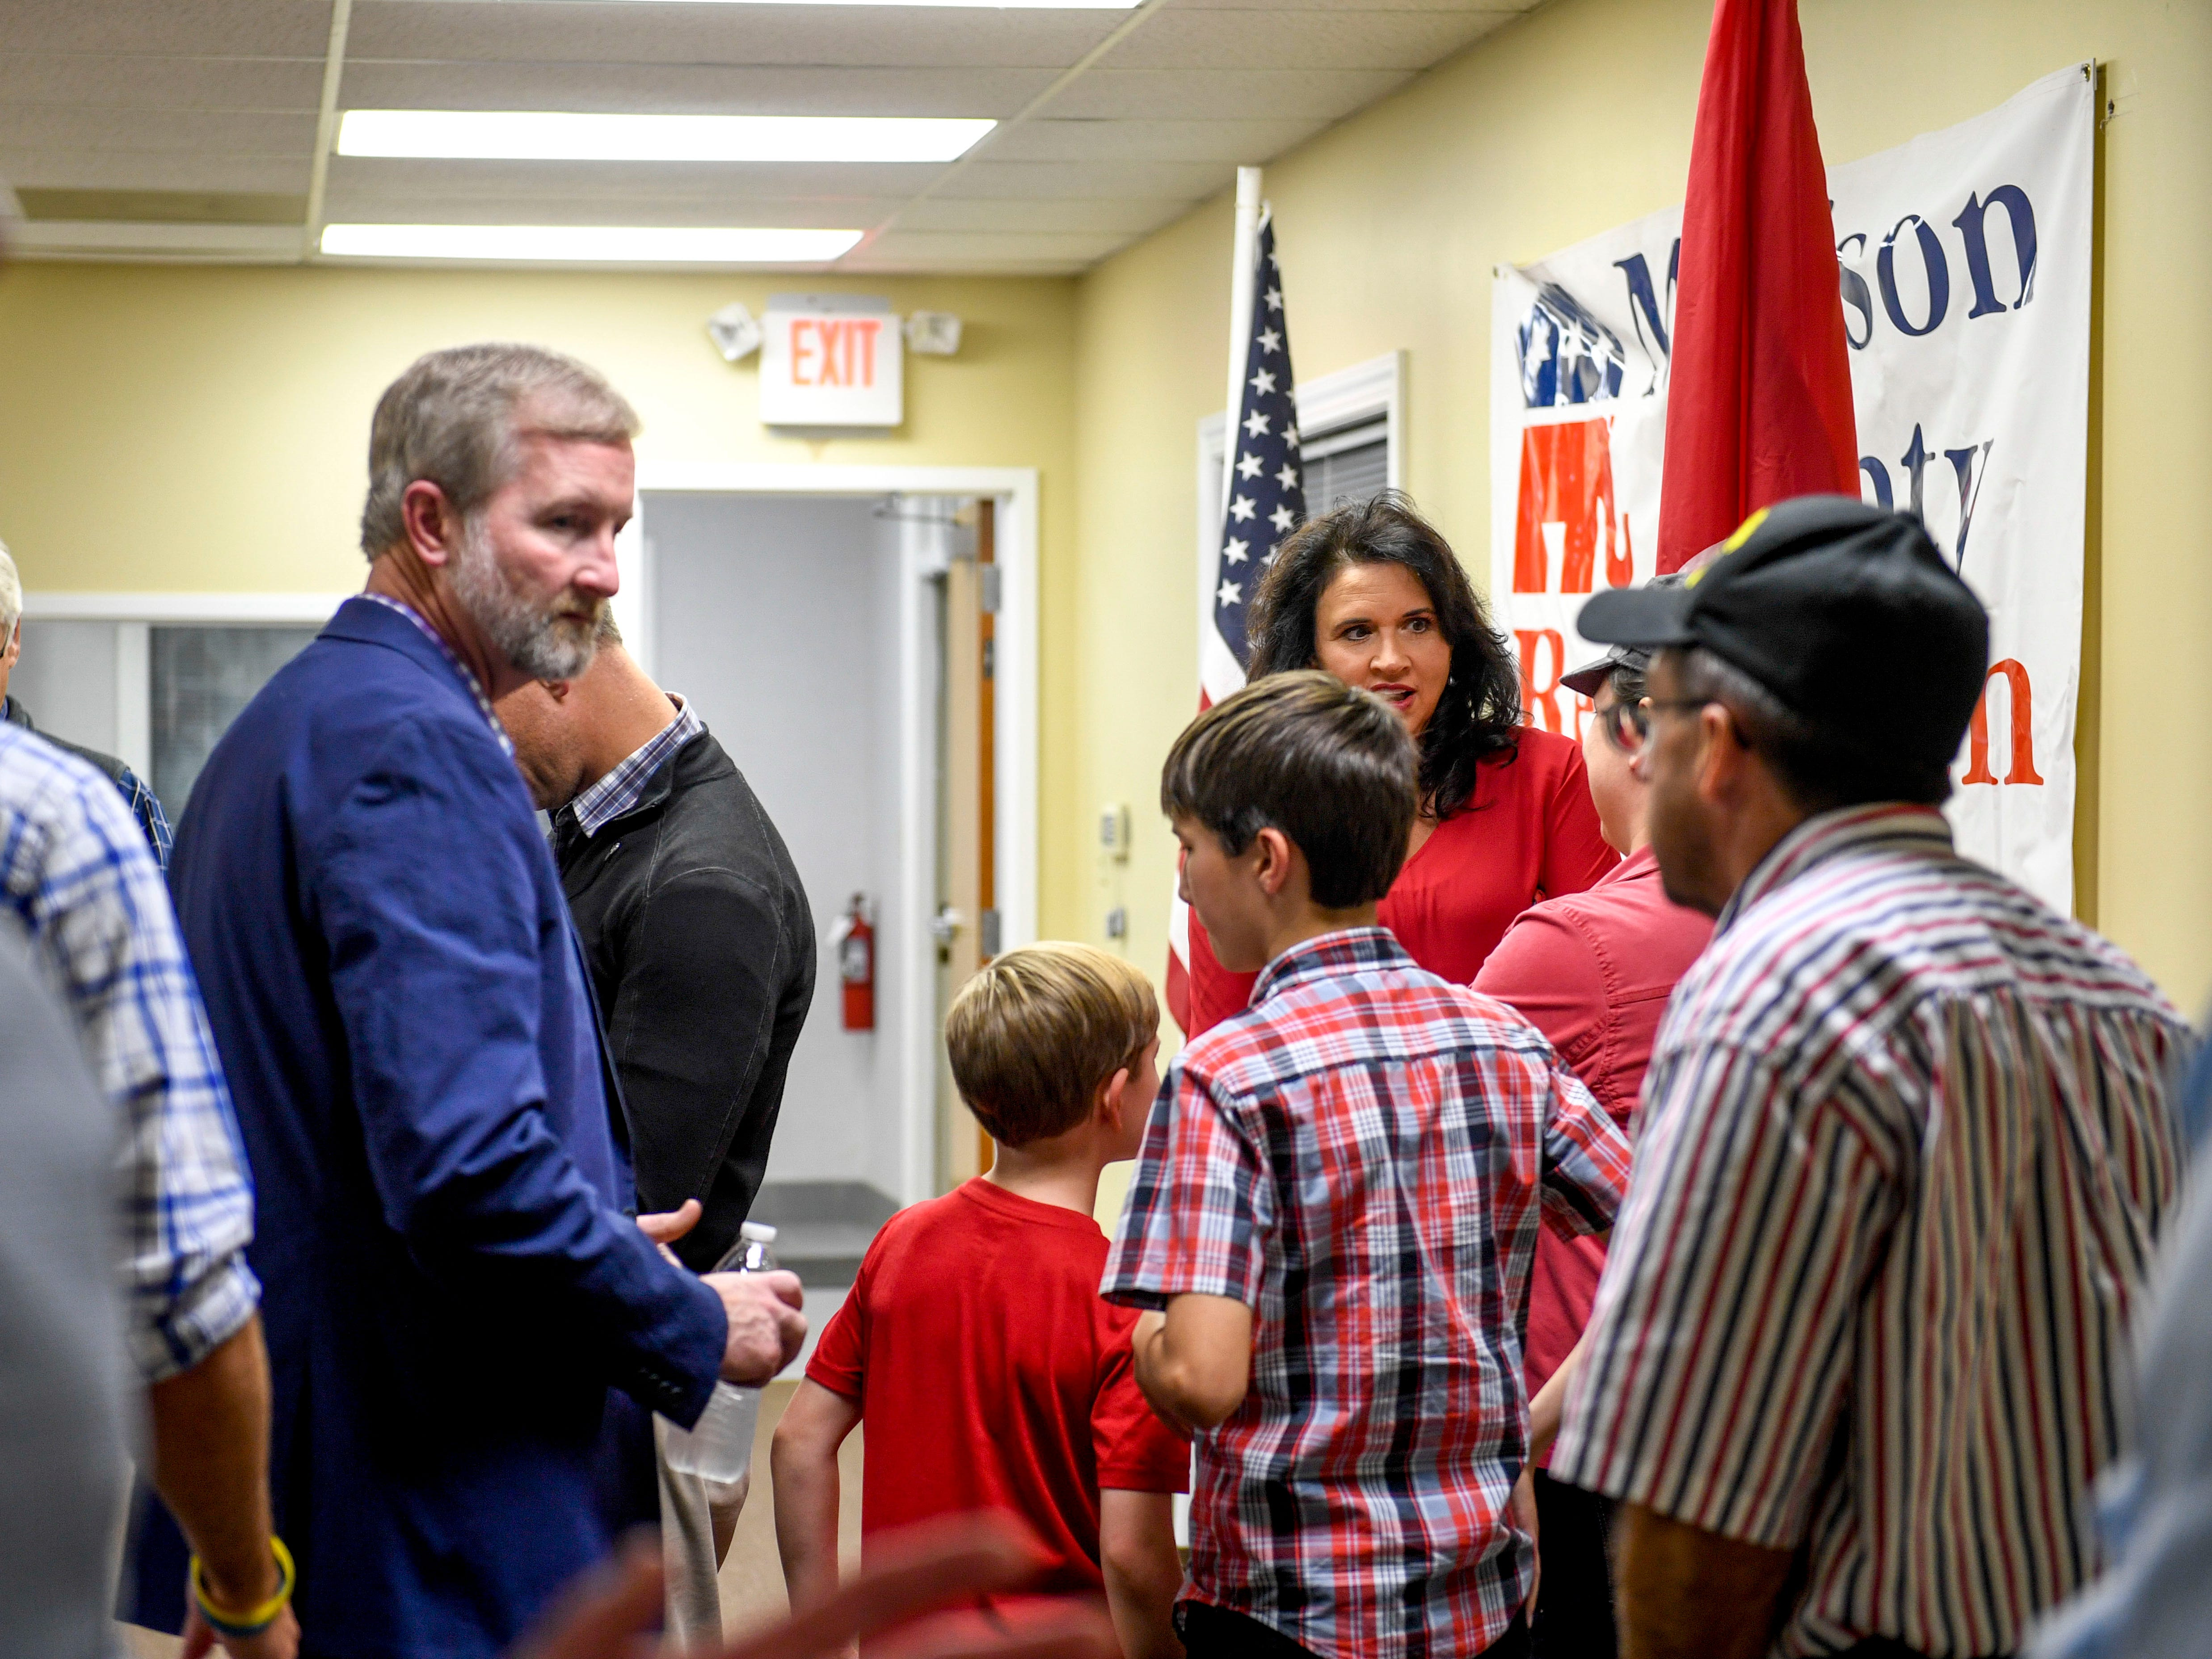 Folks gather and talk after Chris Todd wins state Representative District 73 during an election night watch party at Madison County Republican Headquarters in Jackson, Tenn., on Tuesday, Nov. 6, 2018.